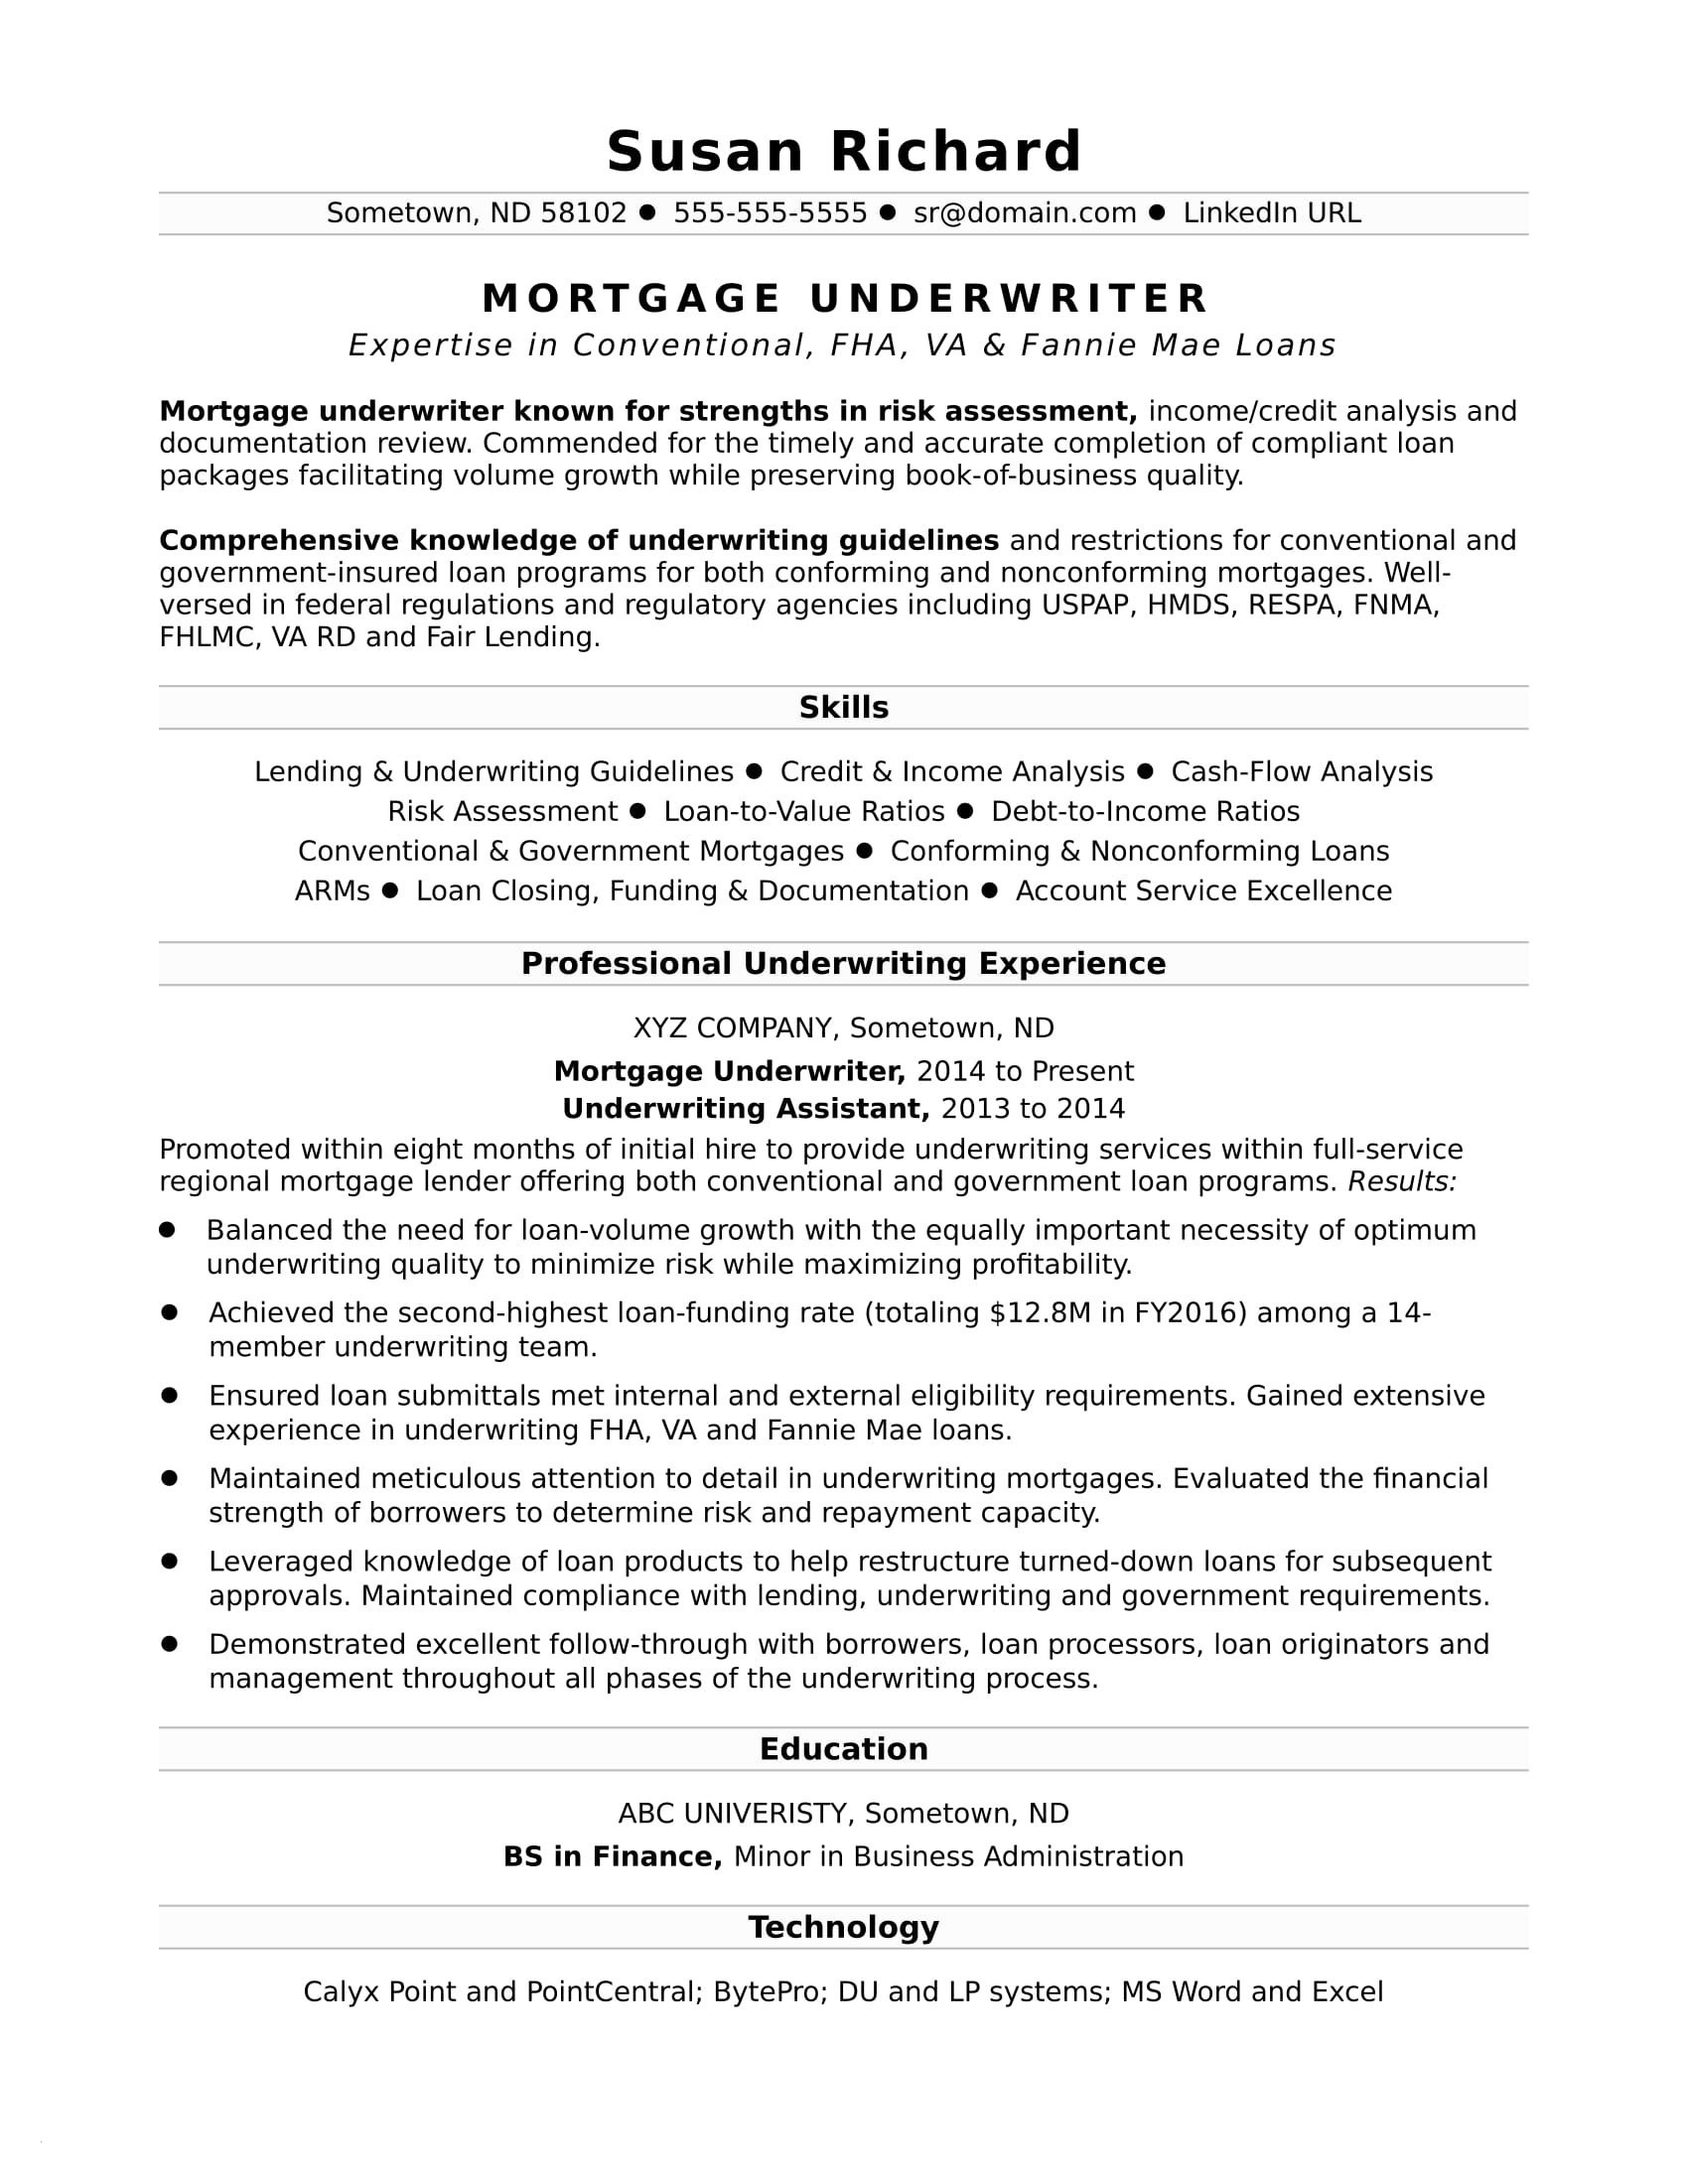 business administration resume template Collection-Free Resume Sample Templates Inspirational Best Pr Resume Template Elegant Dictionary Template 0d Archives 4-a